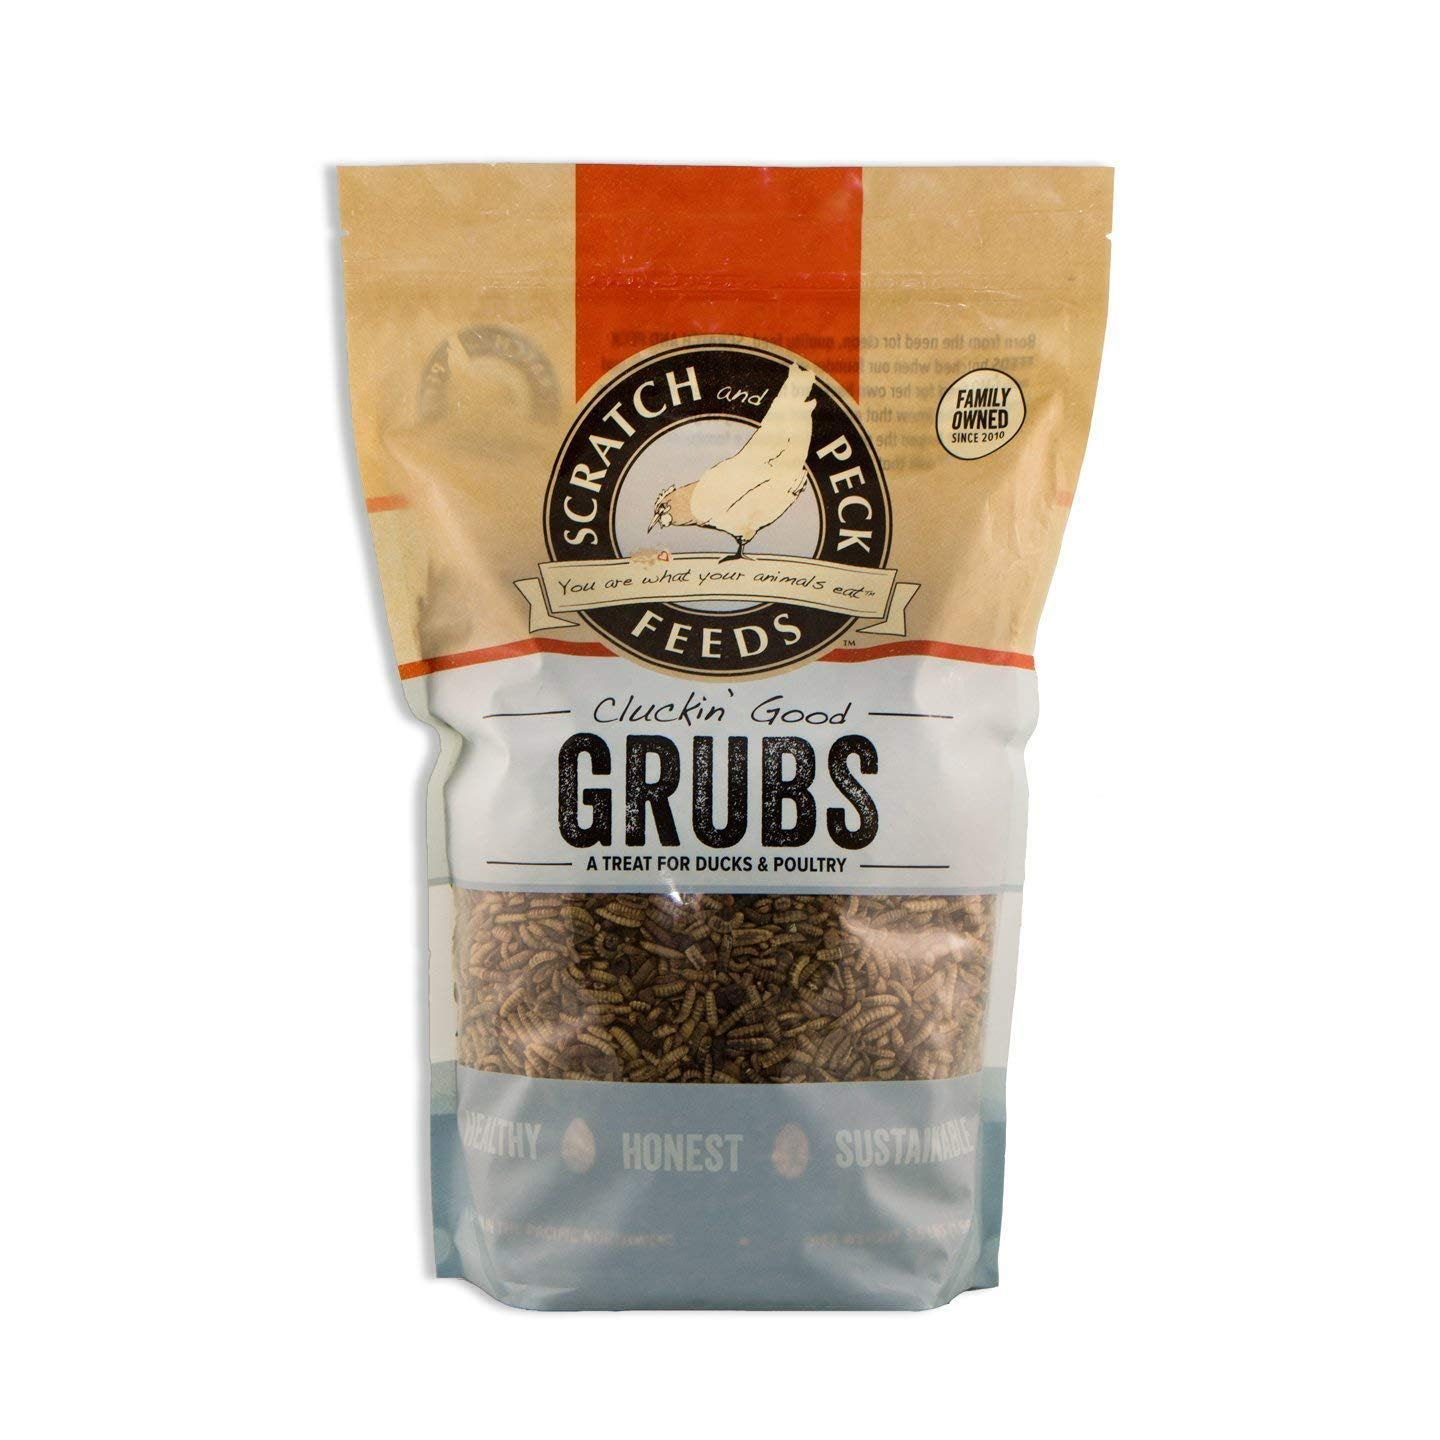 Scratch and Peck Feeds - Cluckin' Good Grubs Tasty Treats for Chickens and Ducks - Dried Black Soldier Fly Larvae - 3.5-lbs by SCRATCH AND PECK FEEDS YOU ARE WHAT YOUR ANIMALS EAT